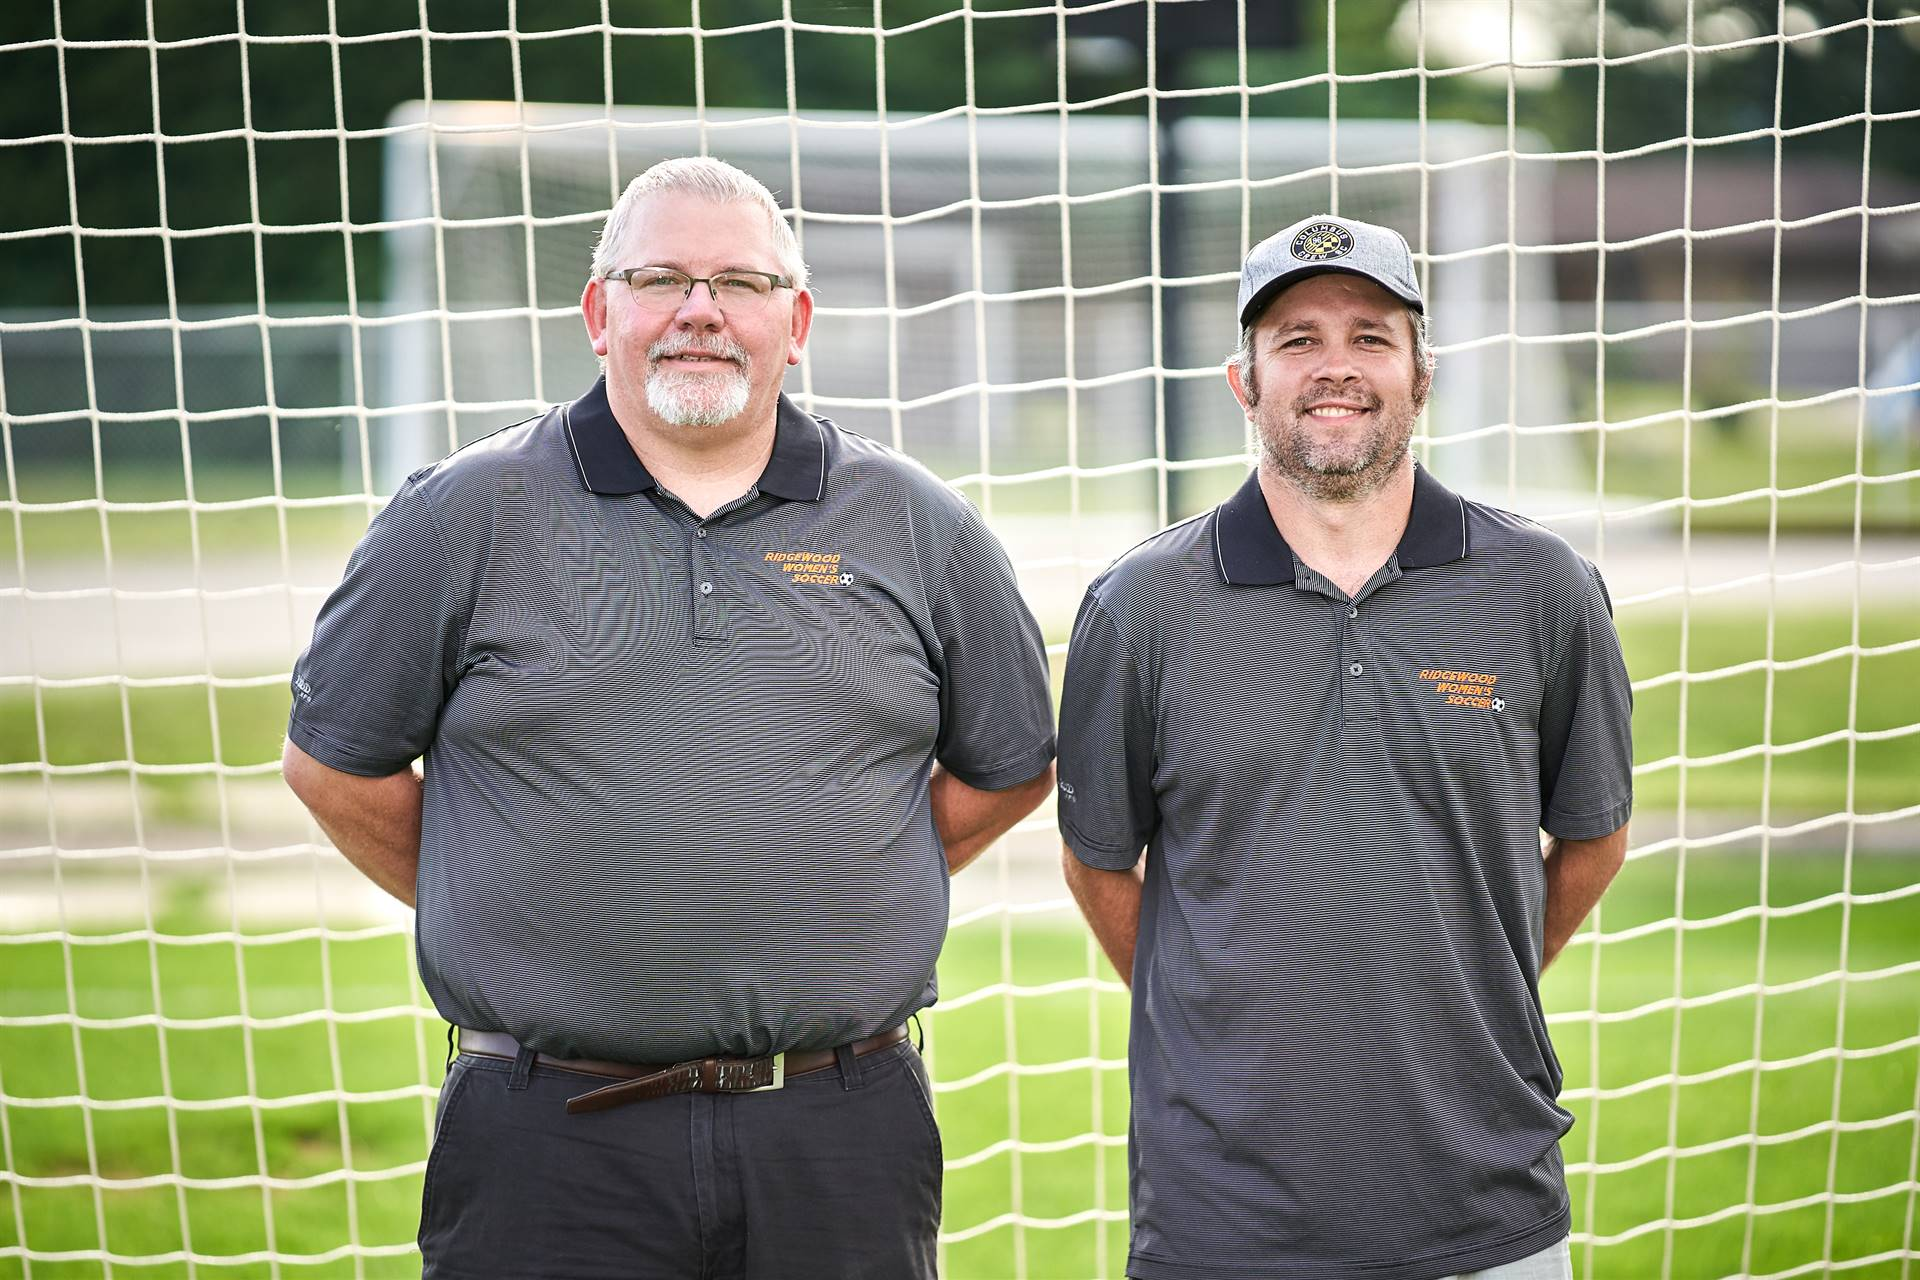 Soccer - Coaches Jeff Eveland and Tim Tubb